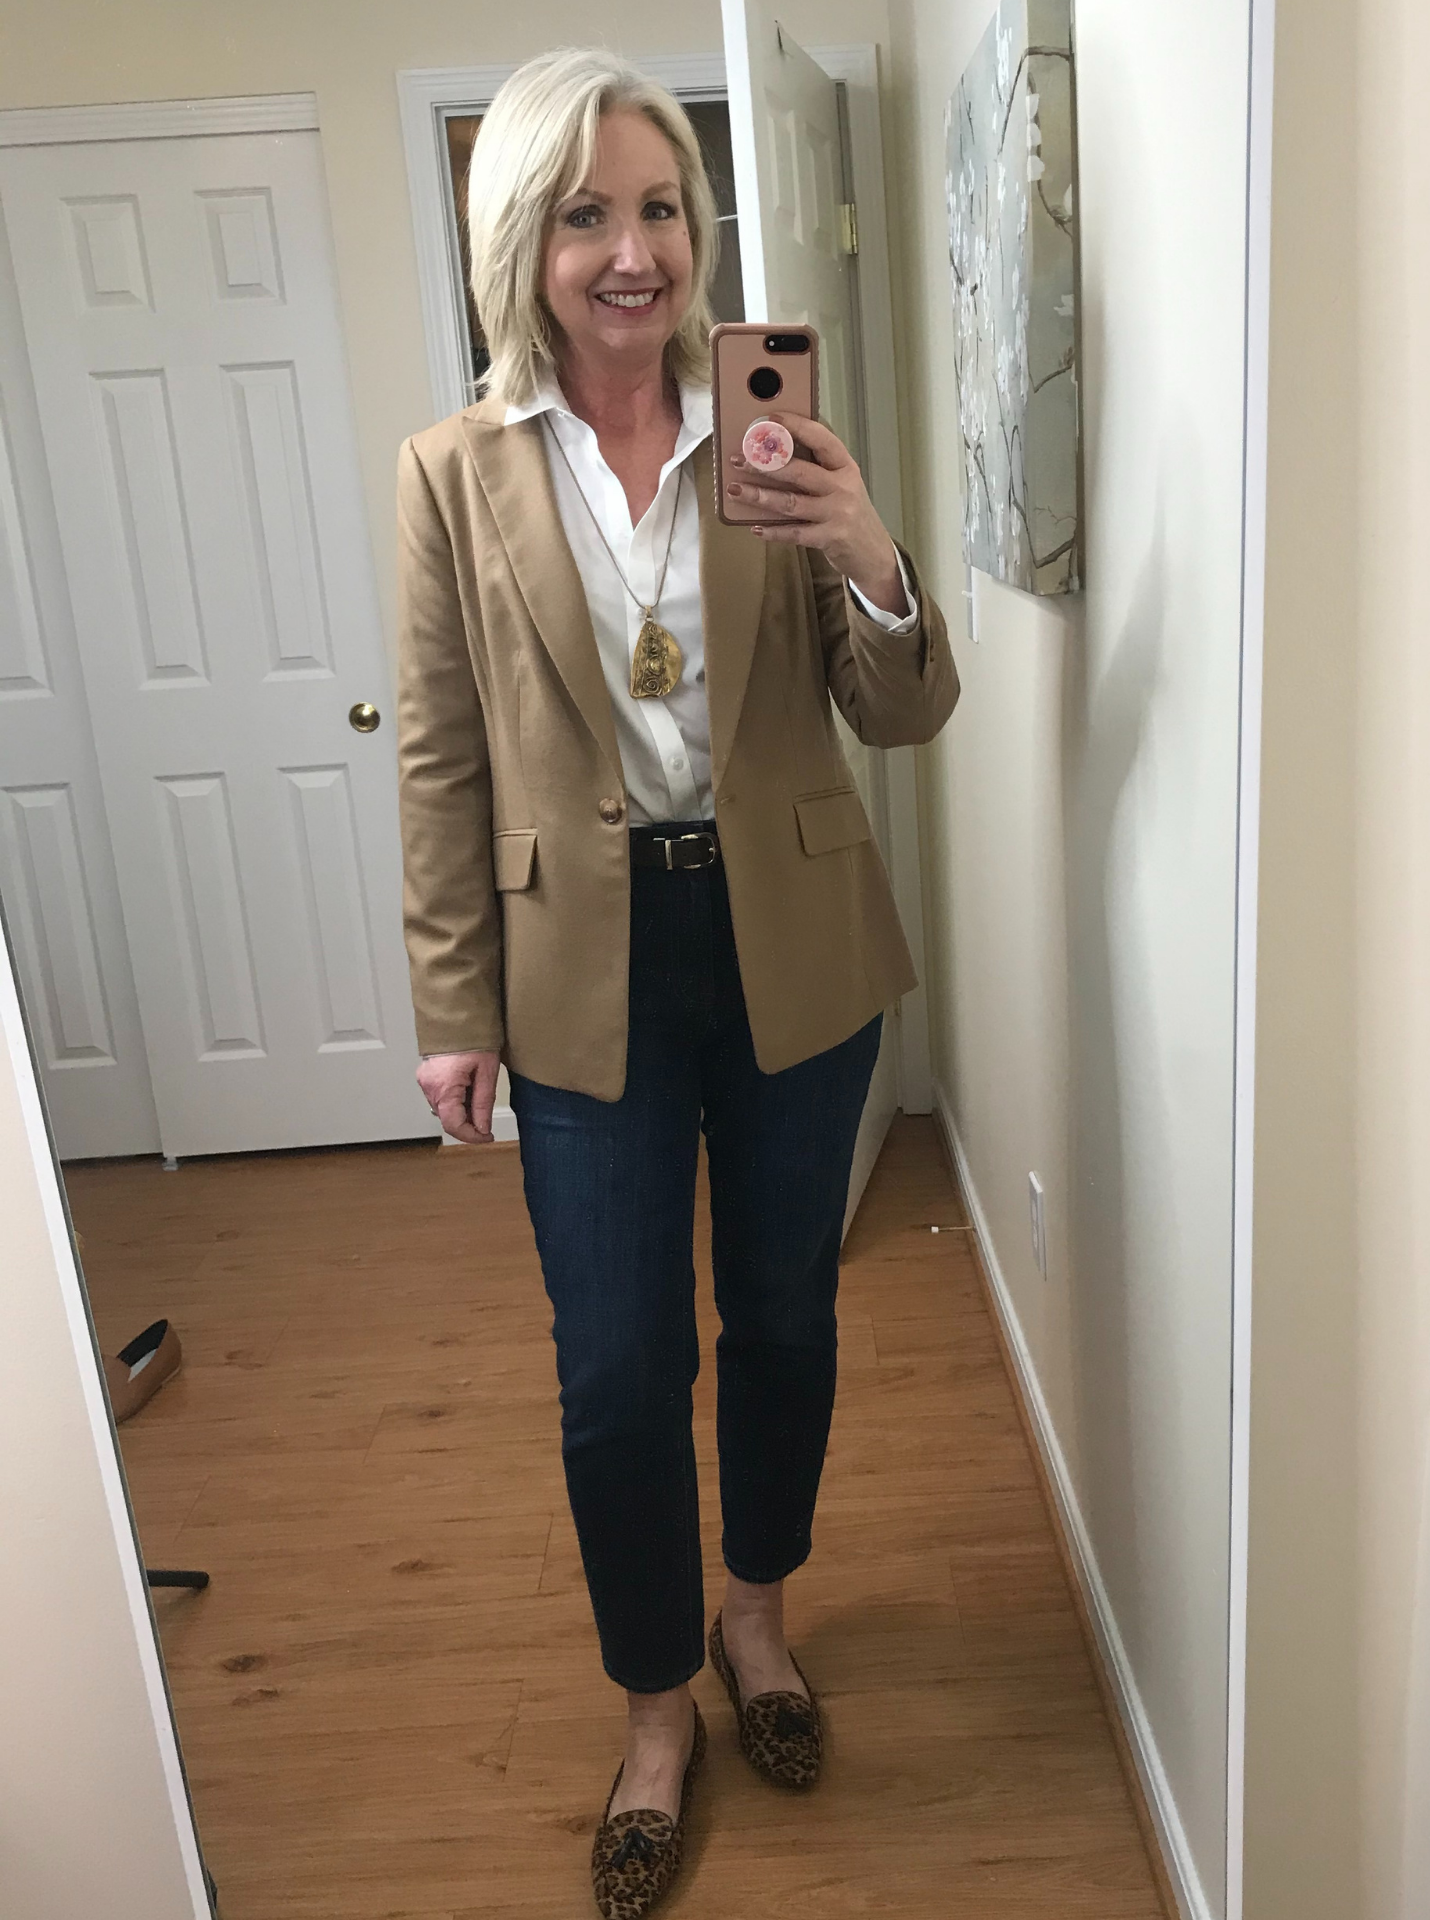 Ankle Jeans White Shirt Full Tuck Belt Leopard Flats Camel Jacket